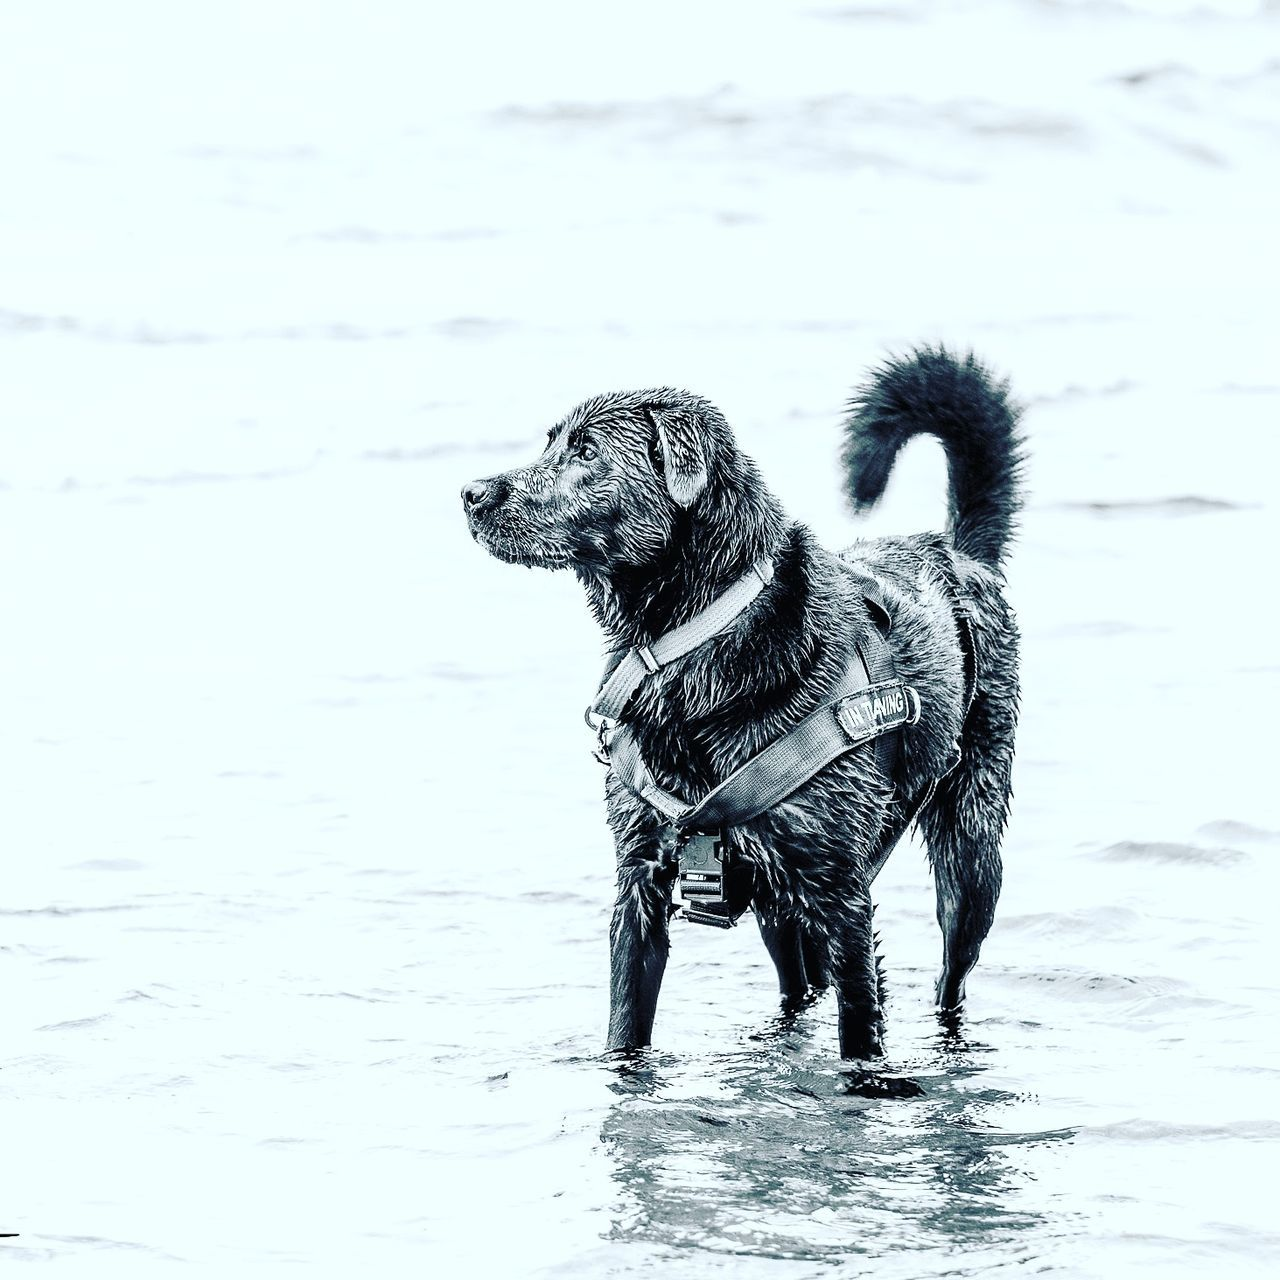 Brylee and her day at the beach Dog One Animal Pets Animal Animal Themes No People Beach Outdoors Water Nature Day Dogsofclicktozen Mammal Domestic Animals Sea